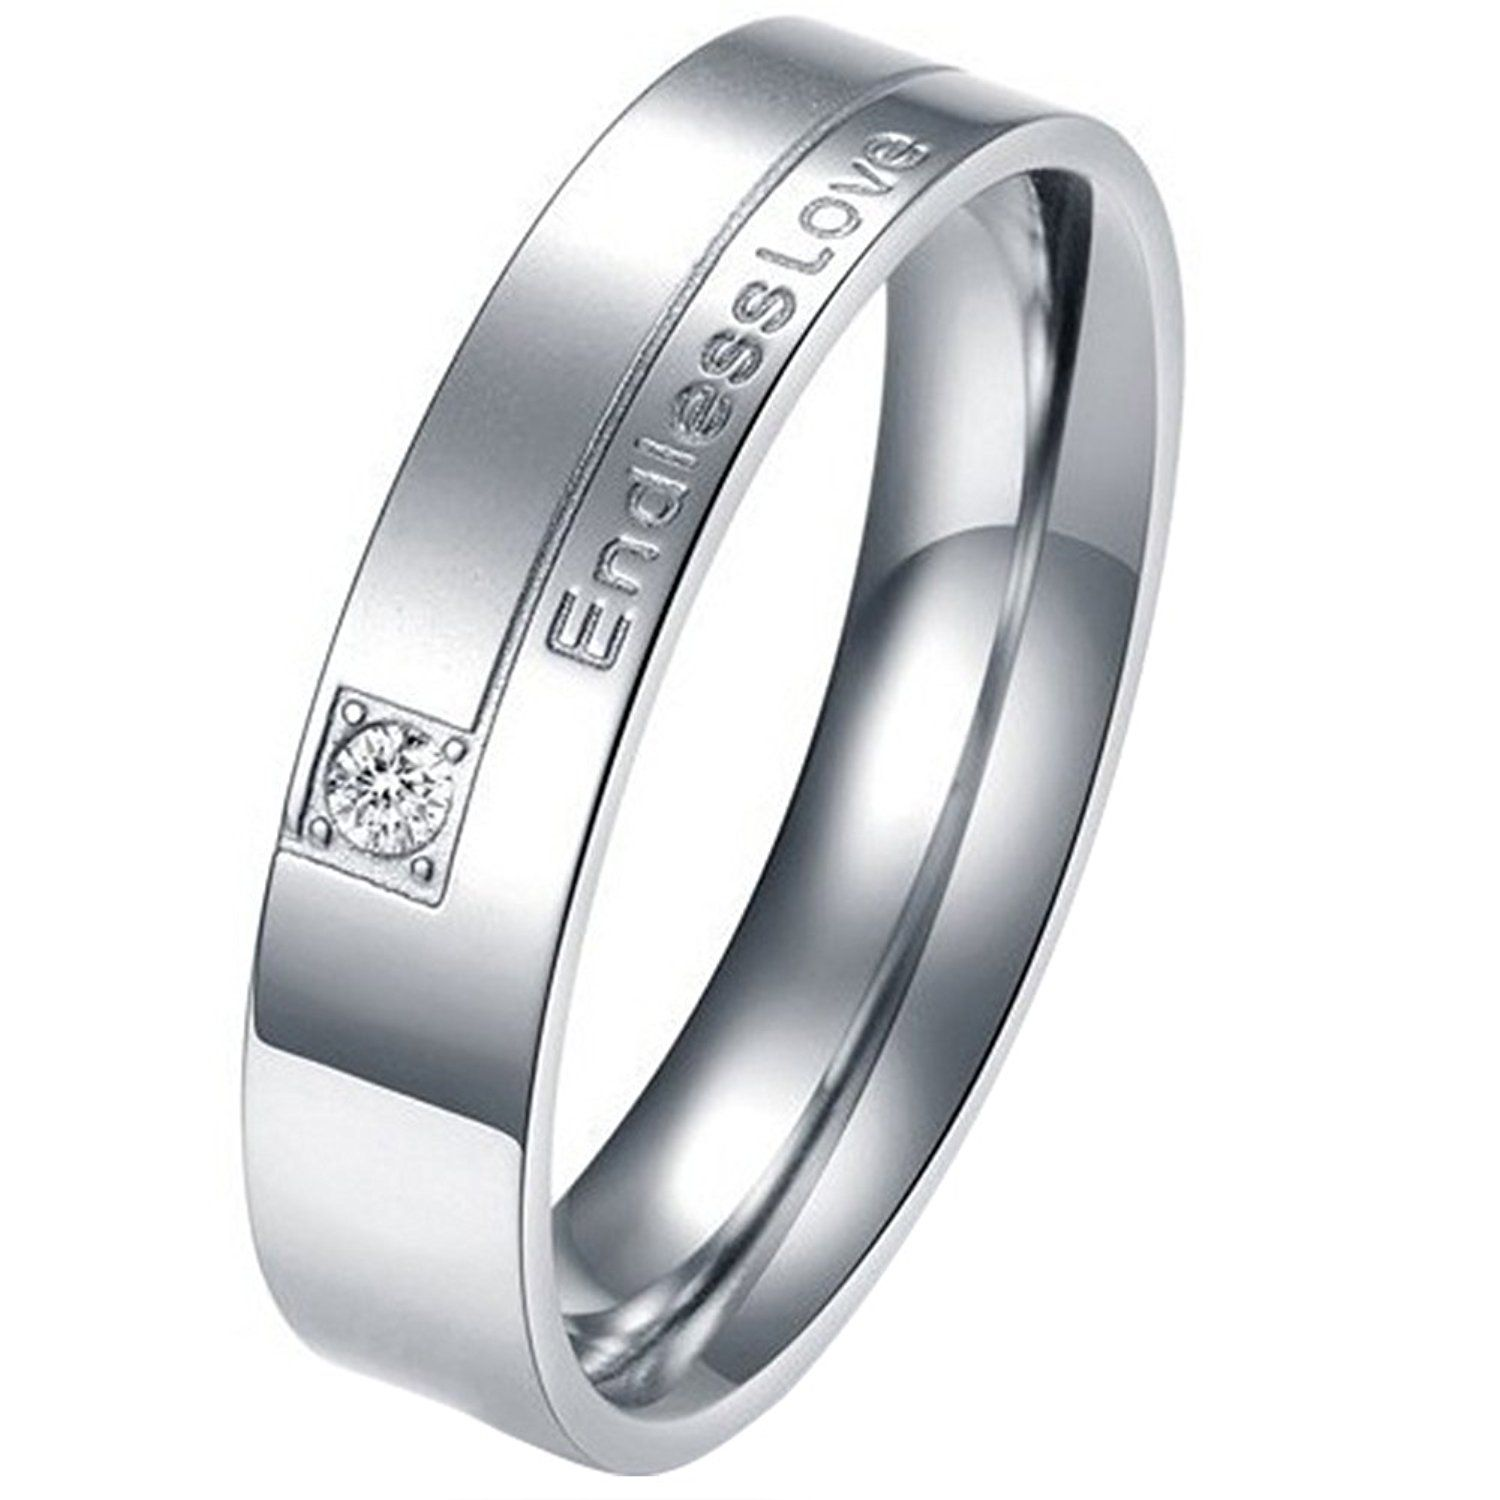 products lovers us rings lover band shipping ring titanium free steel rhinestone love m s uk wedding endless